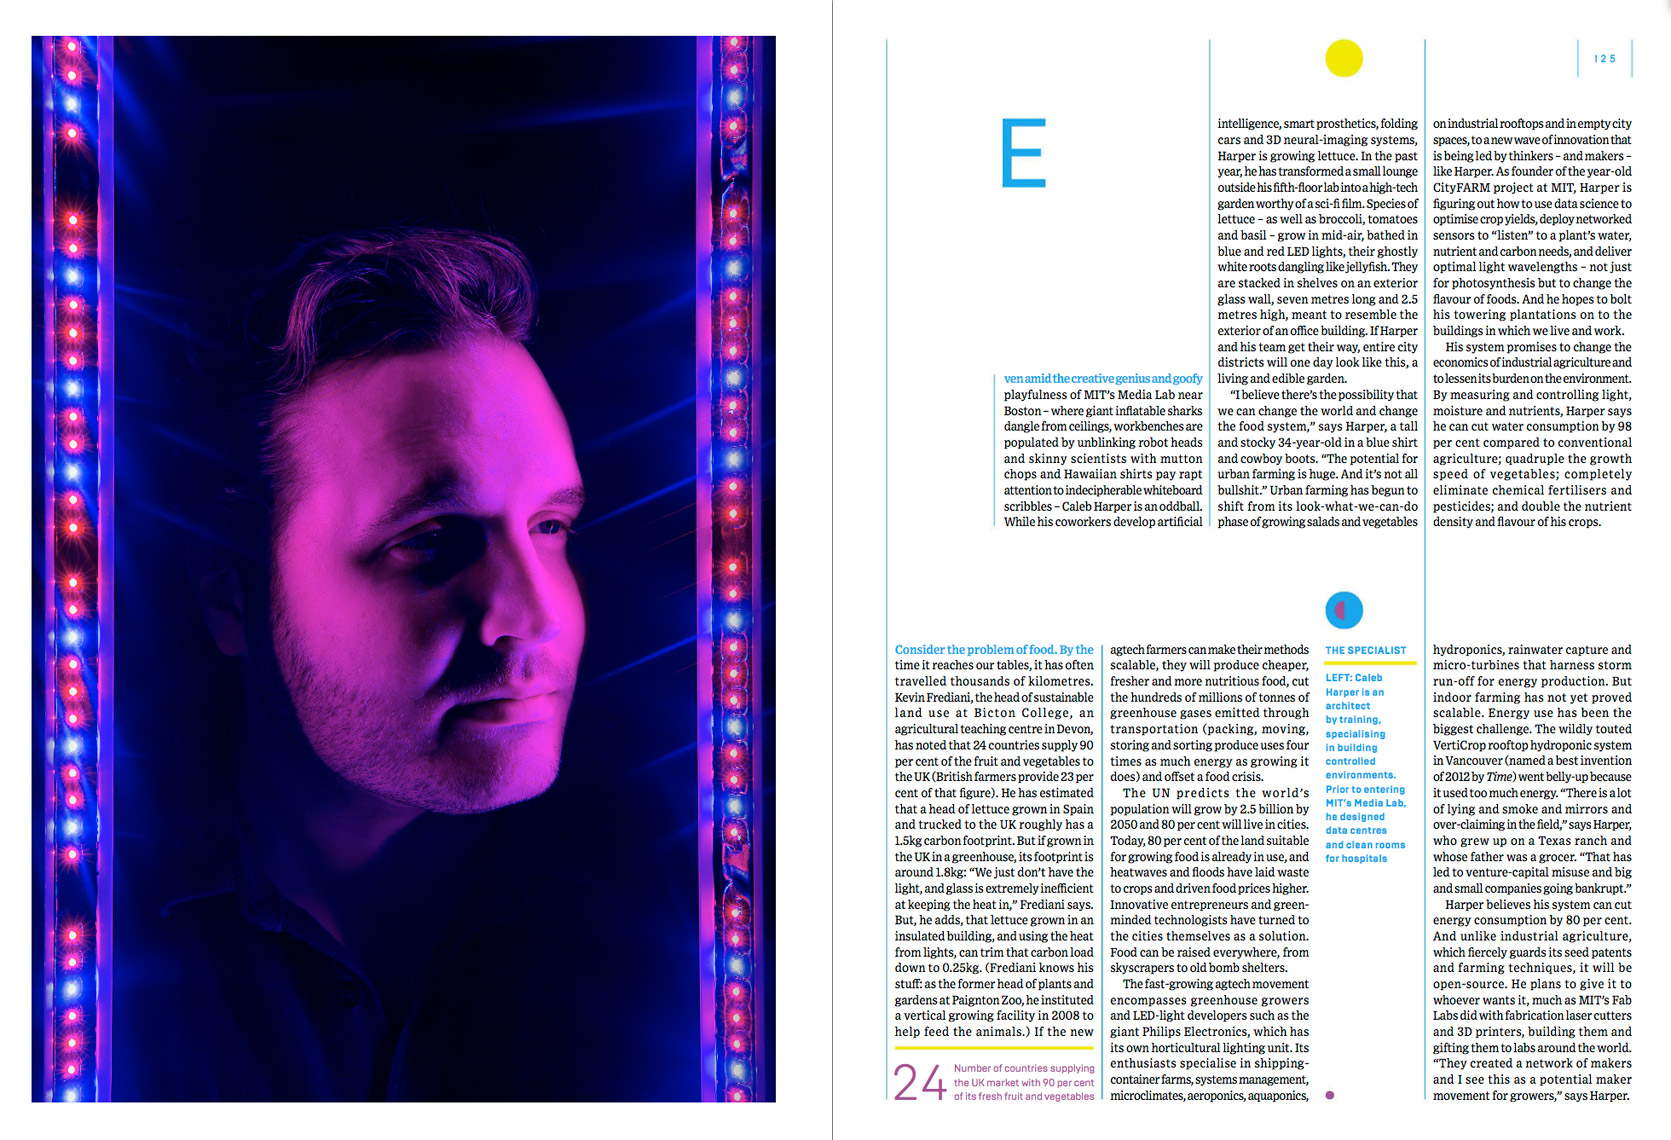 WIRED UK - OCTOBER 2014 - CITY FARM Feature - Spread 4 ...